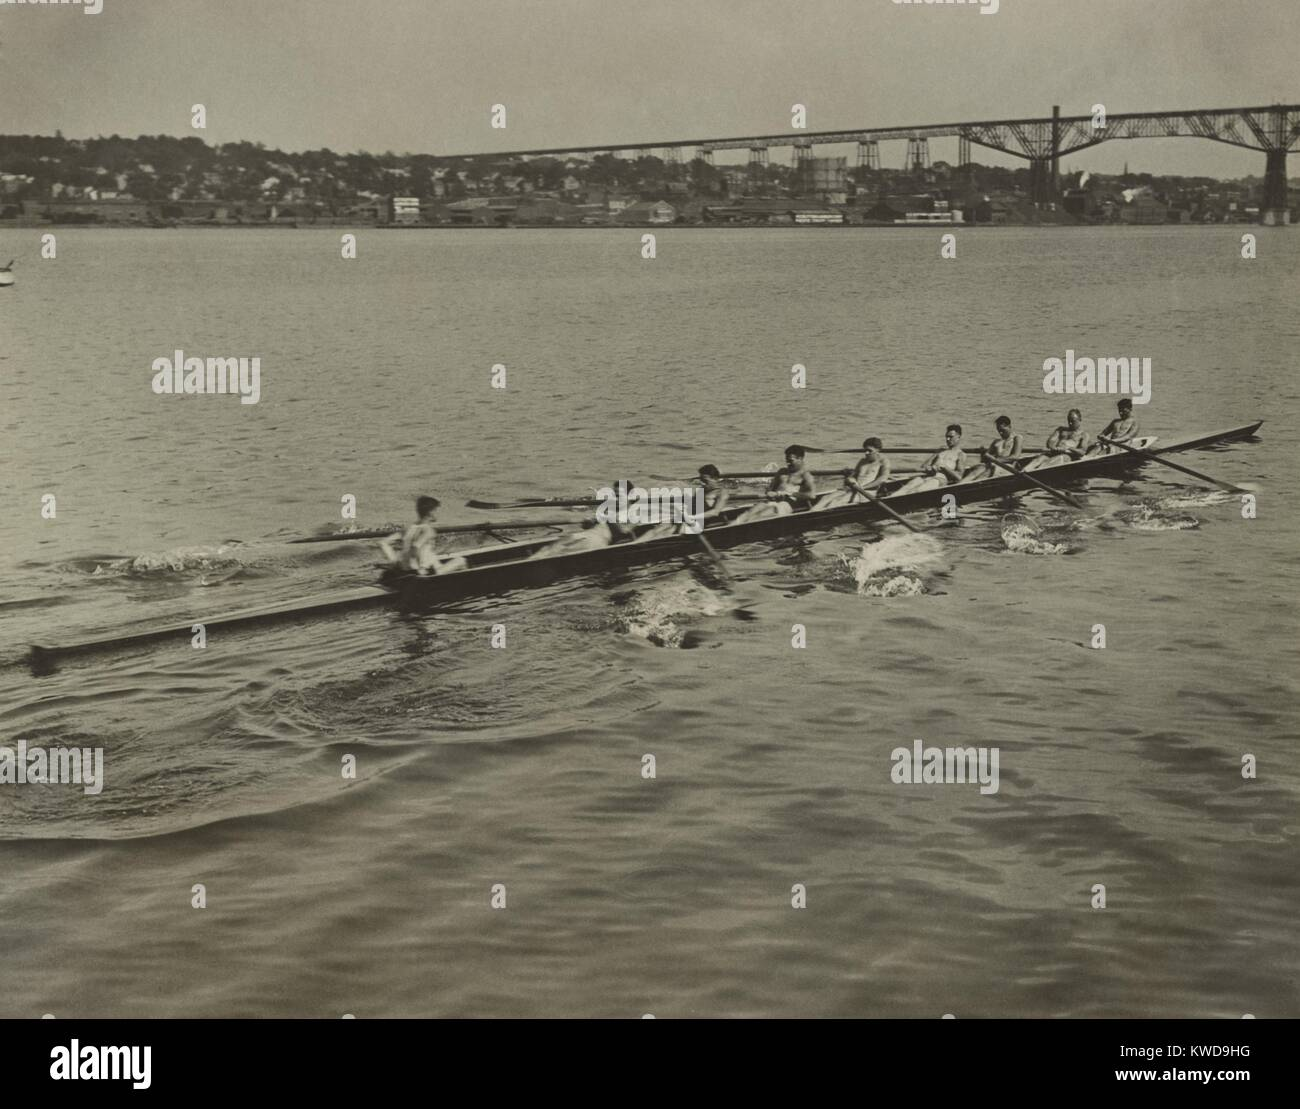 University of Pennsylvania varsity crew in the Hudson River at Poughkeepsie, June 20, 1922. They are training for Stock Photo